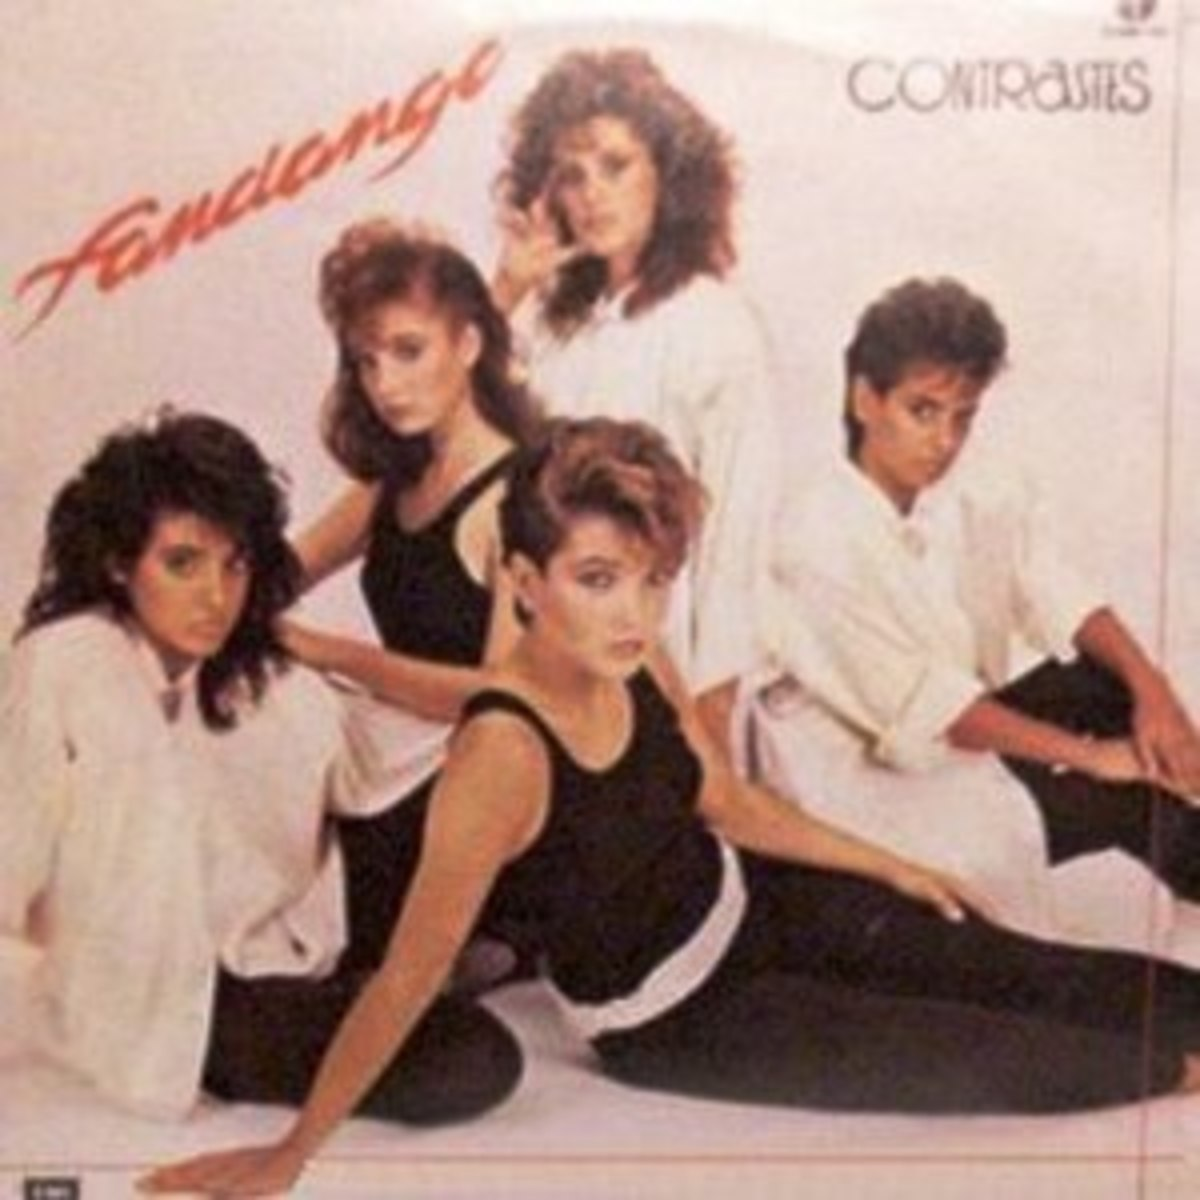 Contrastes the groups first LP which was only released in Monterrey, Mexico in 1985.